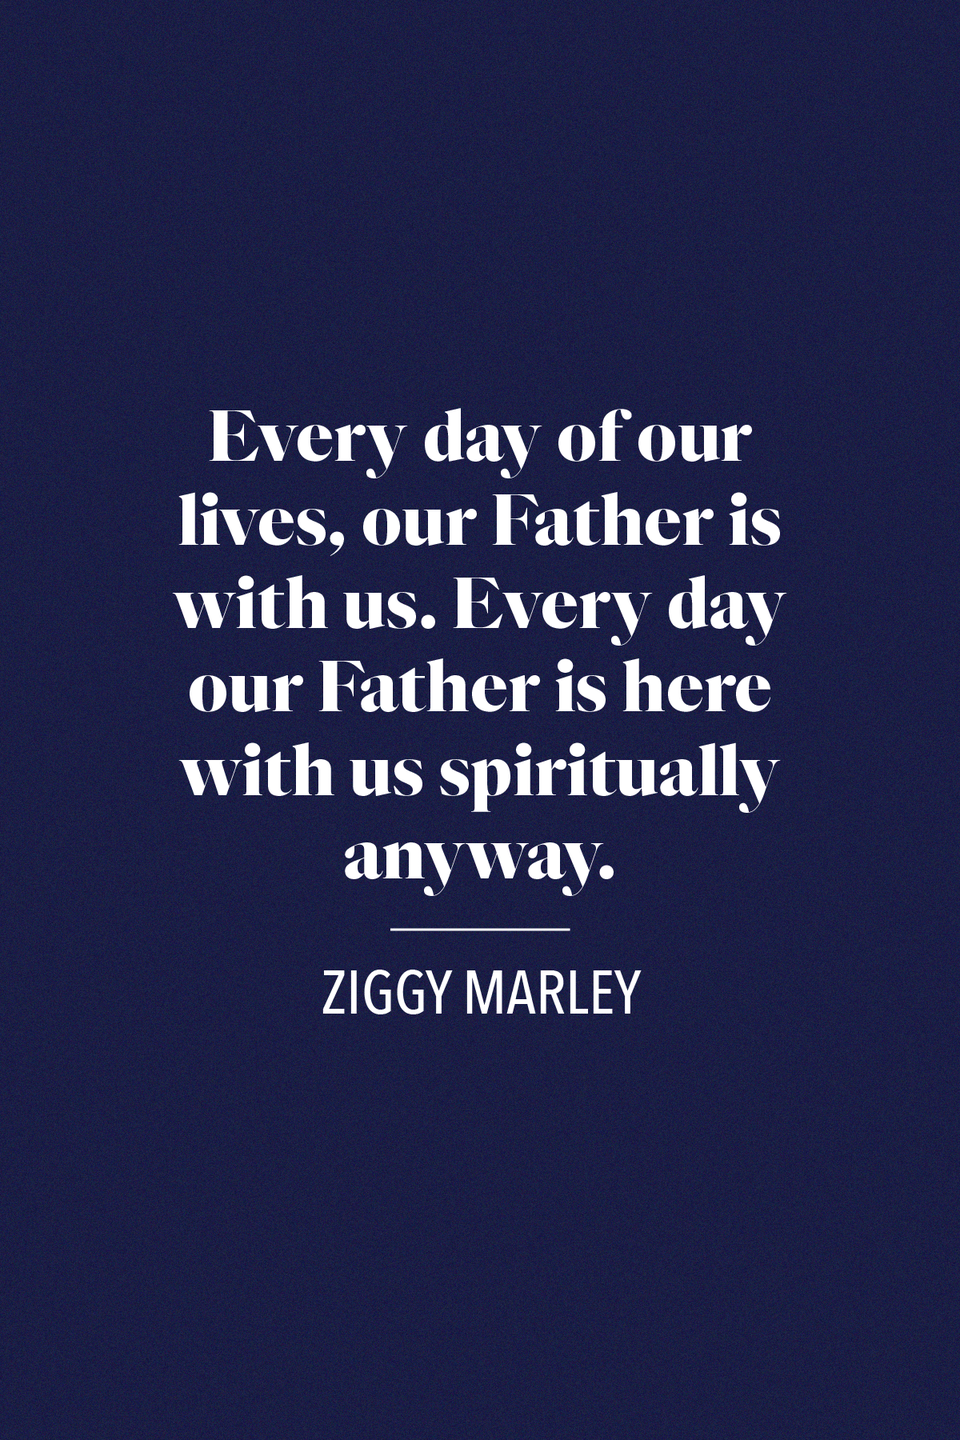 "<p>Ziggy Marley remembered his father Bob Marley, one of the most prolific artists to represent reggae music, <a href=""https://www.essence.com/celebrity/exclusive-ziggy-marley-remembers-his-dad-bob-marley-for-fathers-day/"" rel=""nofollow noopener"" target=""_blank"" data-ylk=""slk:in an Essence feature for Father's Day"" class=""link rapid-noclick-resp"">in an <em>Essence</em> feature for Father's Day</a>, ""Every day of our lives, our Father is with us. Every day our Father is here with us spiritually anyway.""</p>"